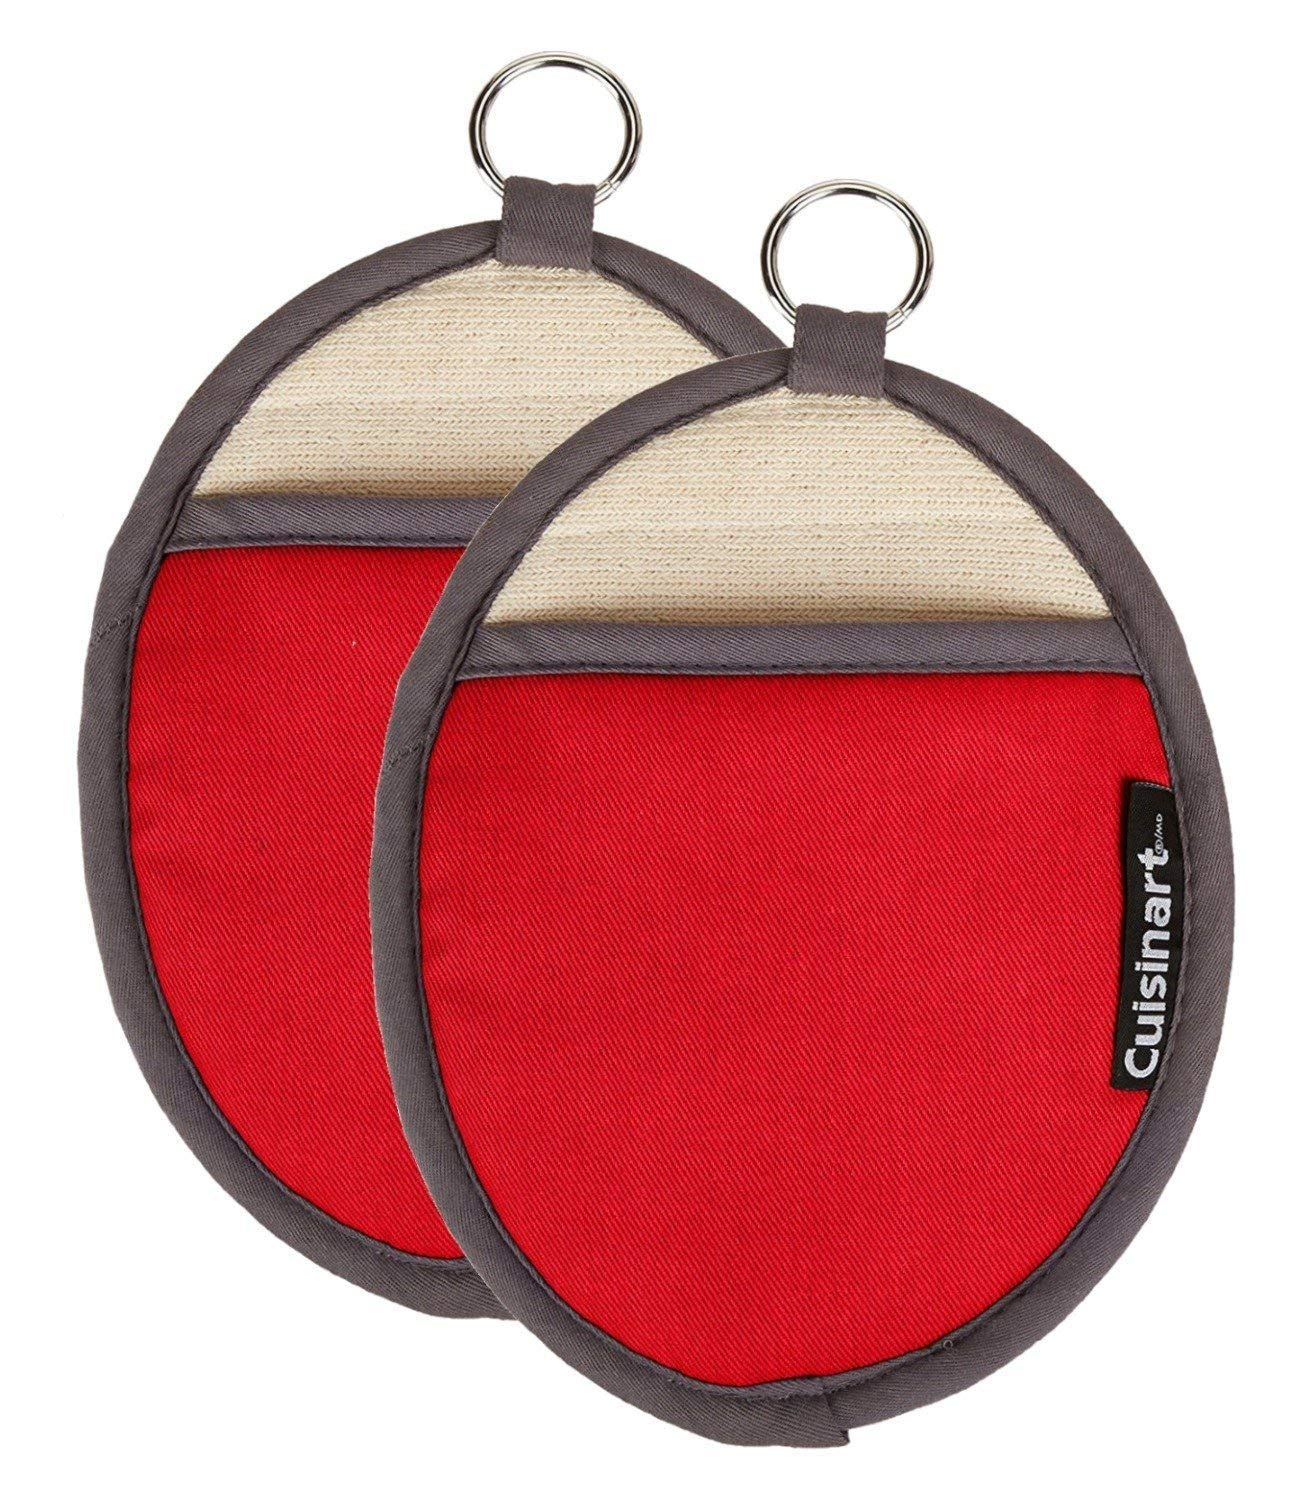 Cuisinart Silicone Oval Pot Holders and Oven Mitts - Heat Resistant, Handle Hot Oven / Cooking Items Safely - Soft Insulated Pockets, Non-Slip Grip and Convenient Hanging Loop- Red, Pack of 2 Mitts